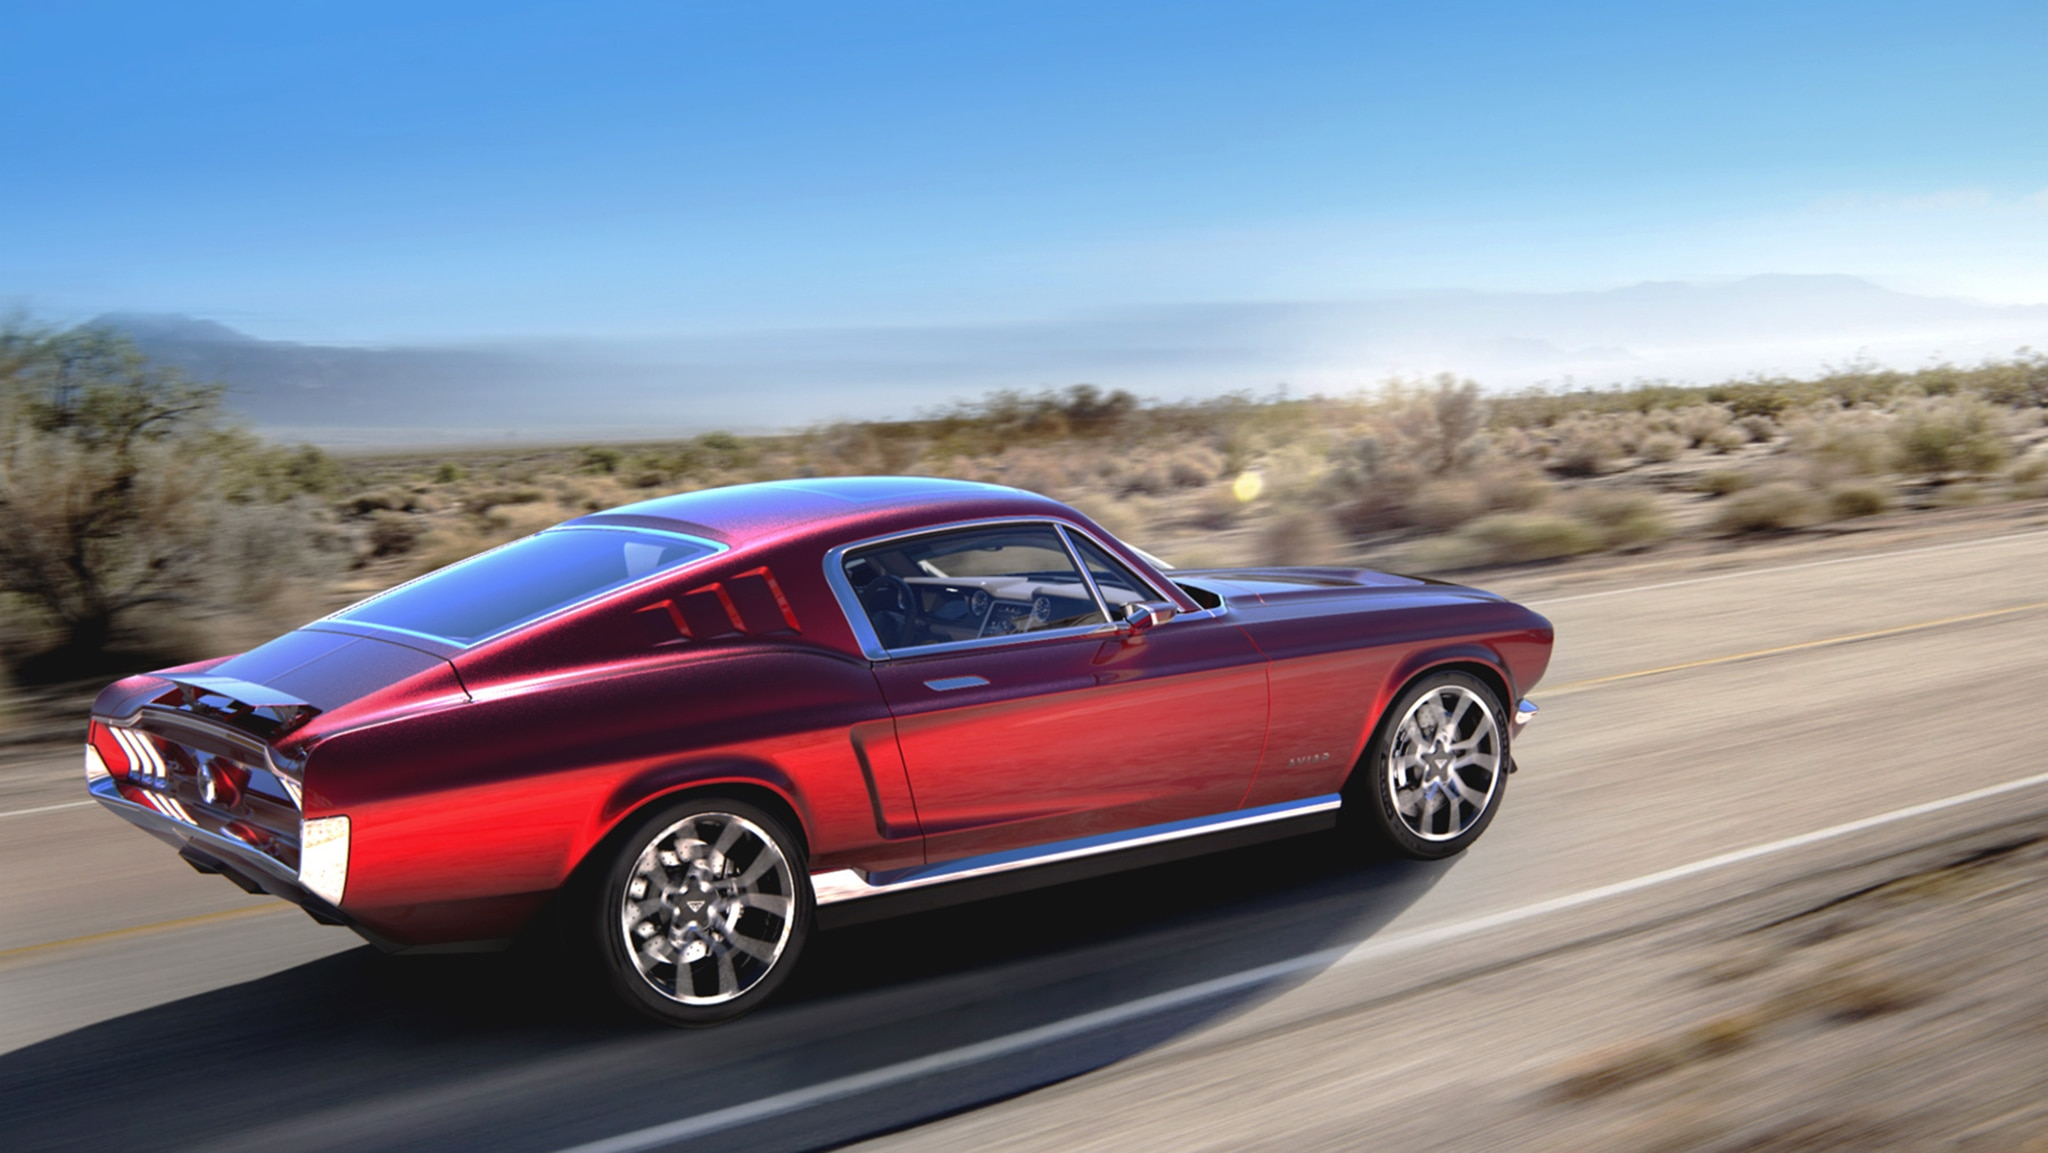 This Russian Retro Mustang Ev Promises 0 62 Mph In 2 2 Sec